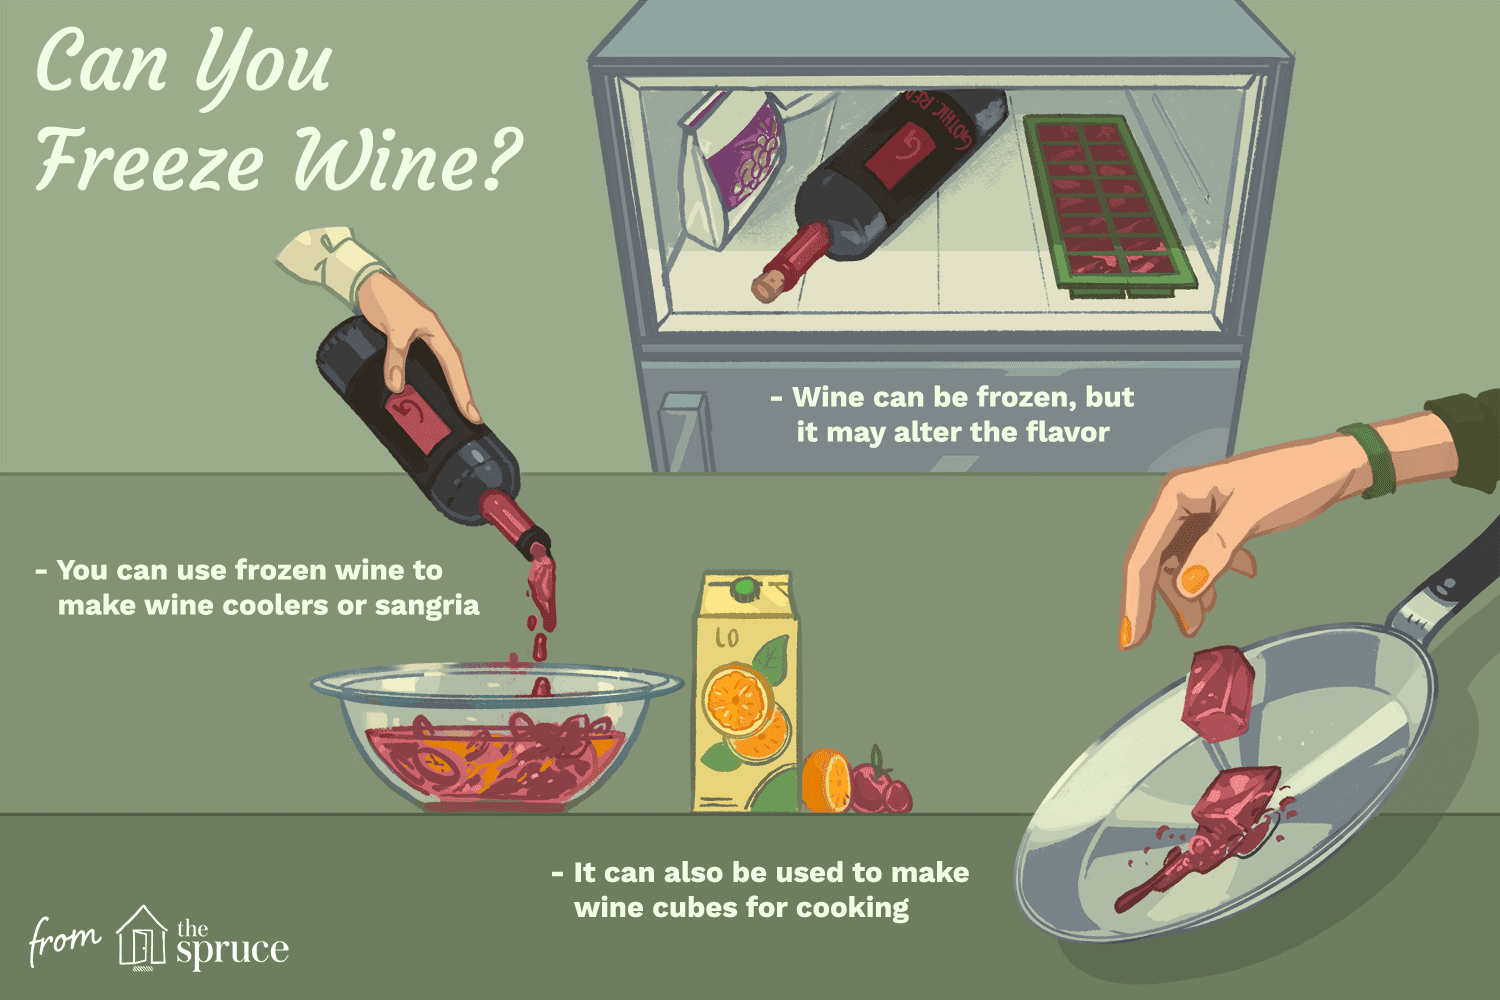 illustration that looks at how frozen wine can be used